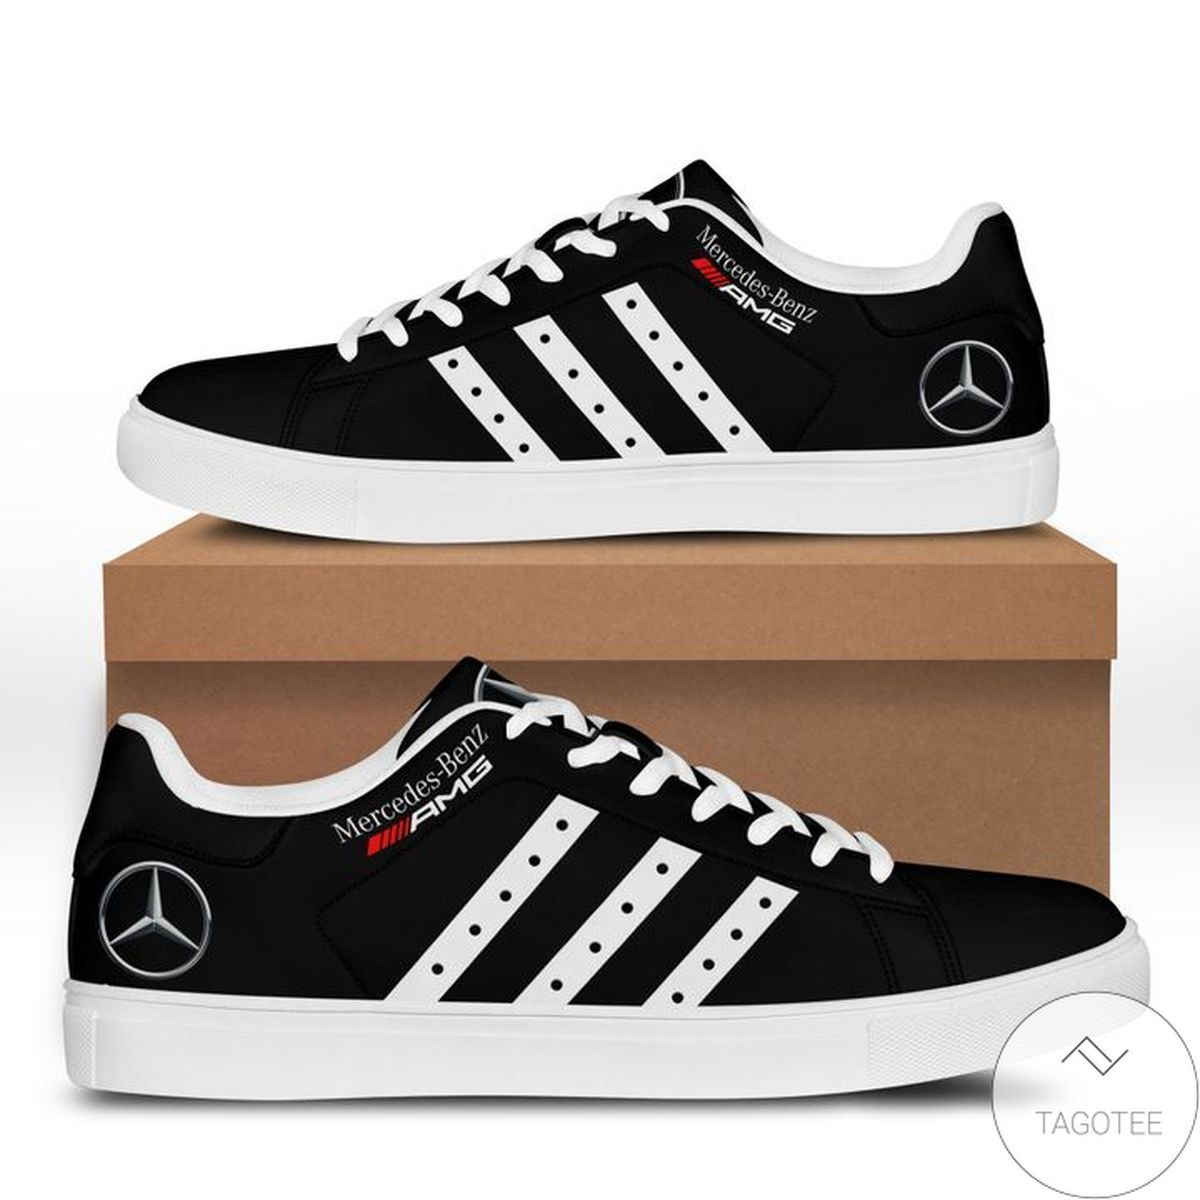 Free Mercedes Amg Black Stan Smith Shoes